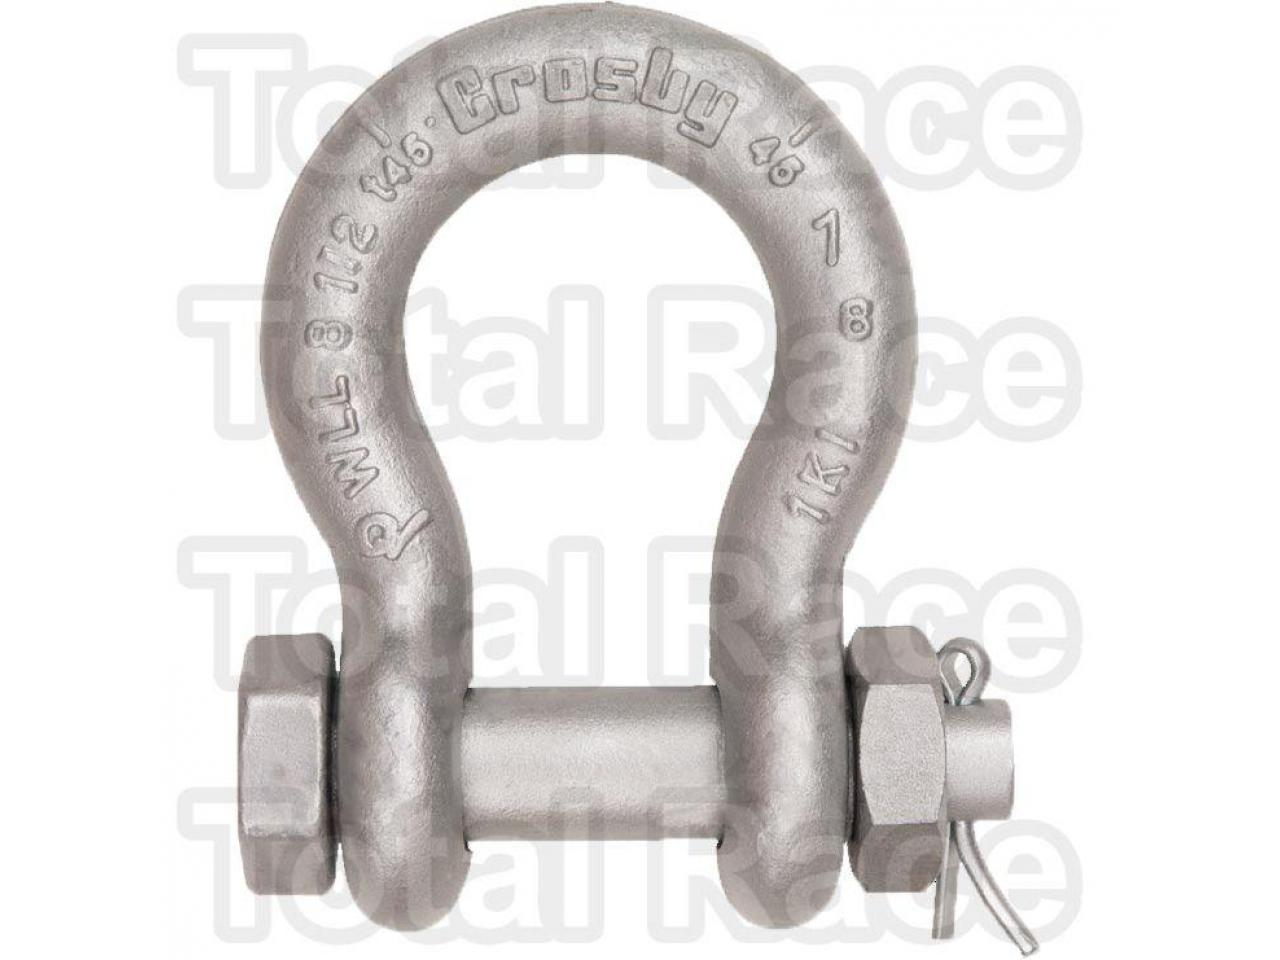 Shackles omega cu bolt, piulita si stift